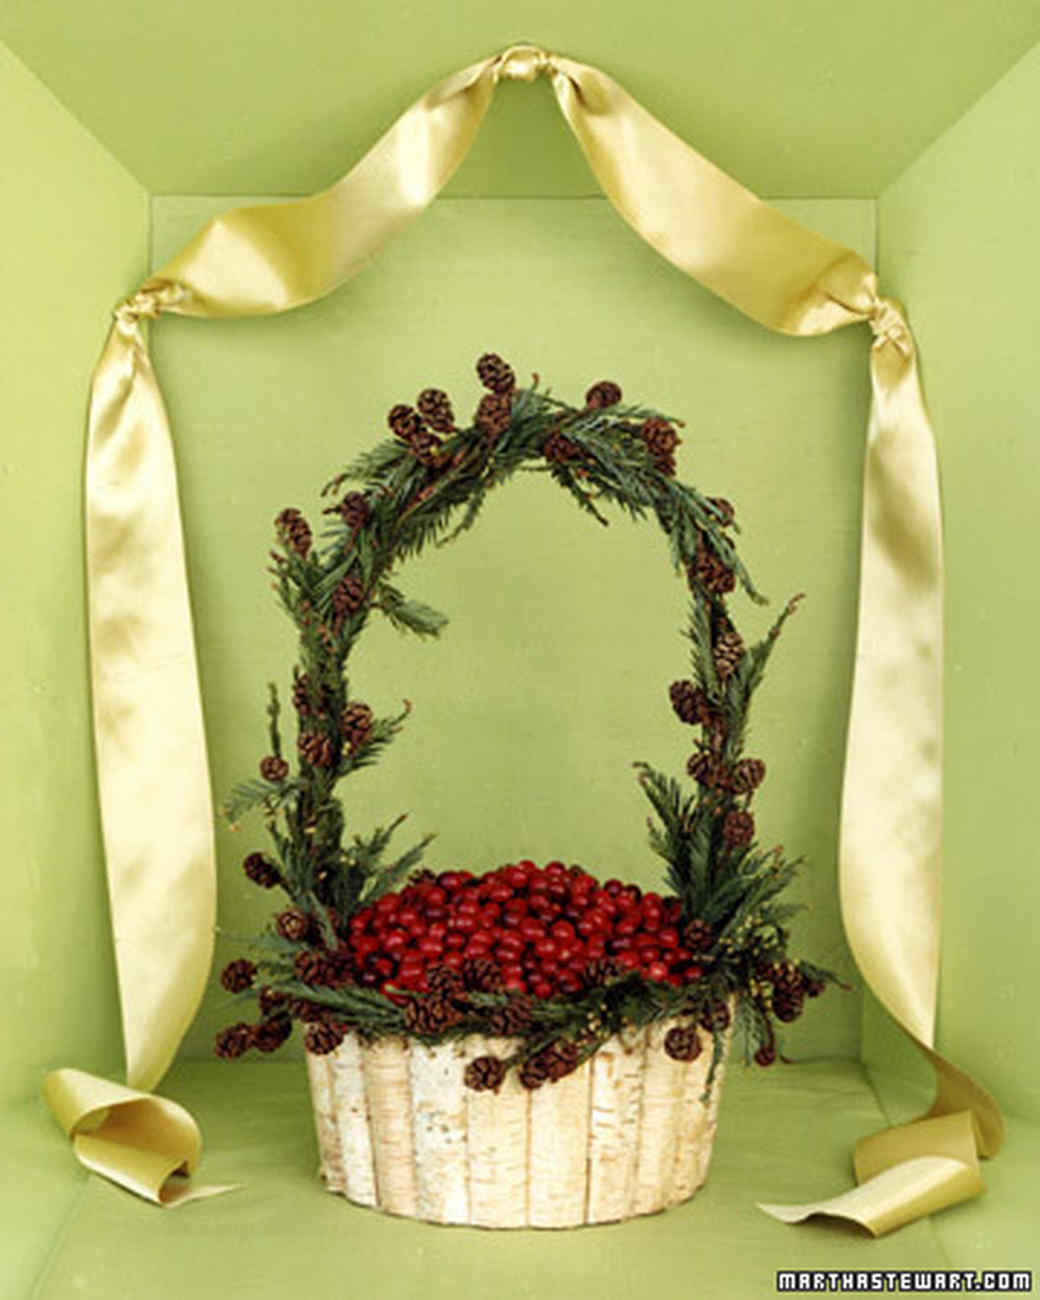 Cranberry and Pine Basket